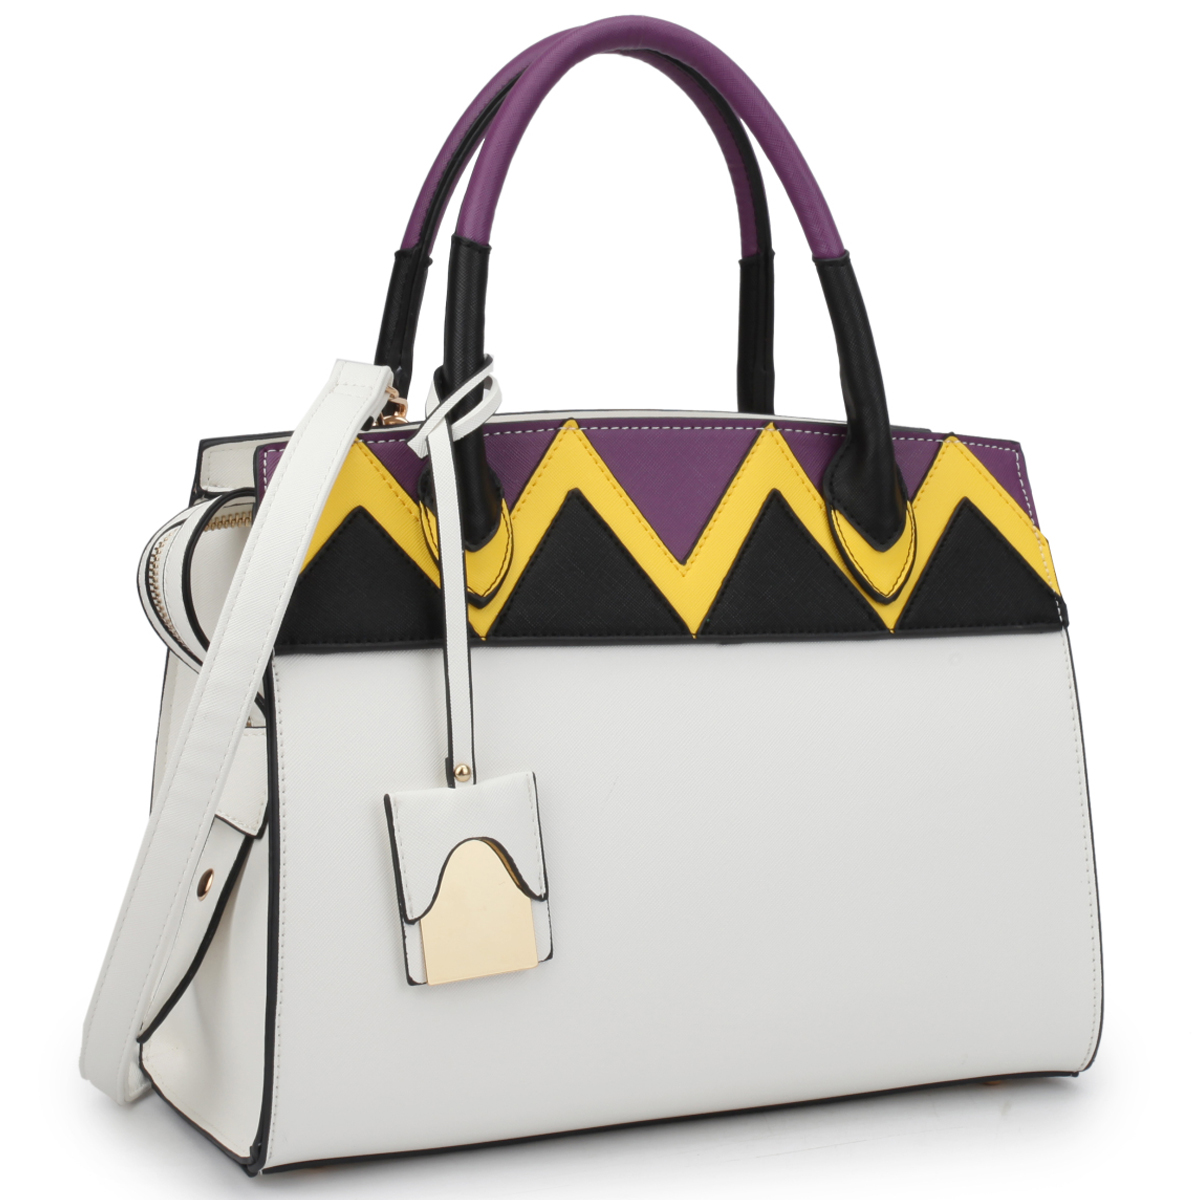 Dasein Medium Satchel Two Tone Body and Handle with Aztec Pattern Design